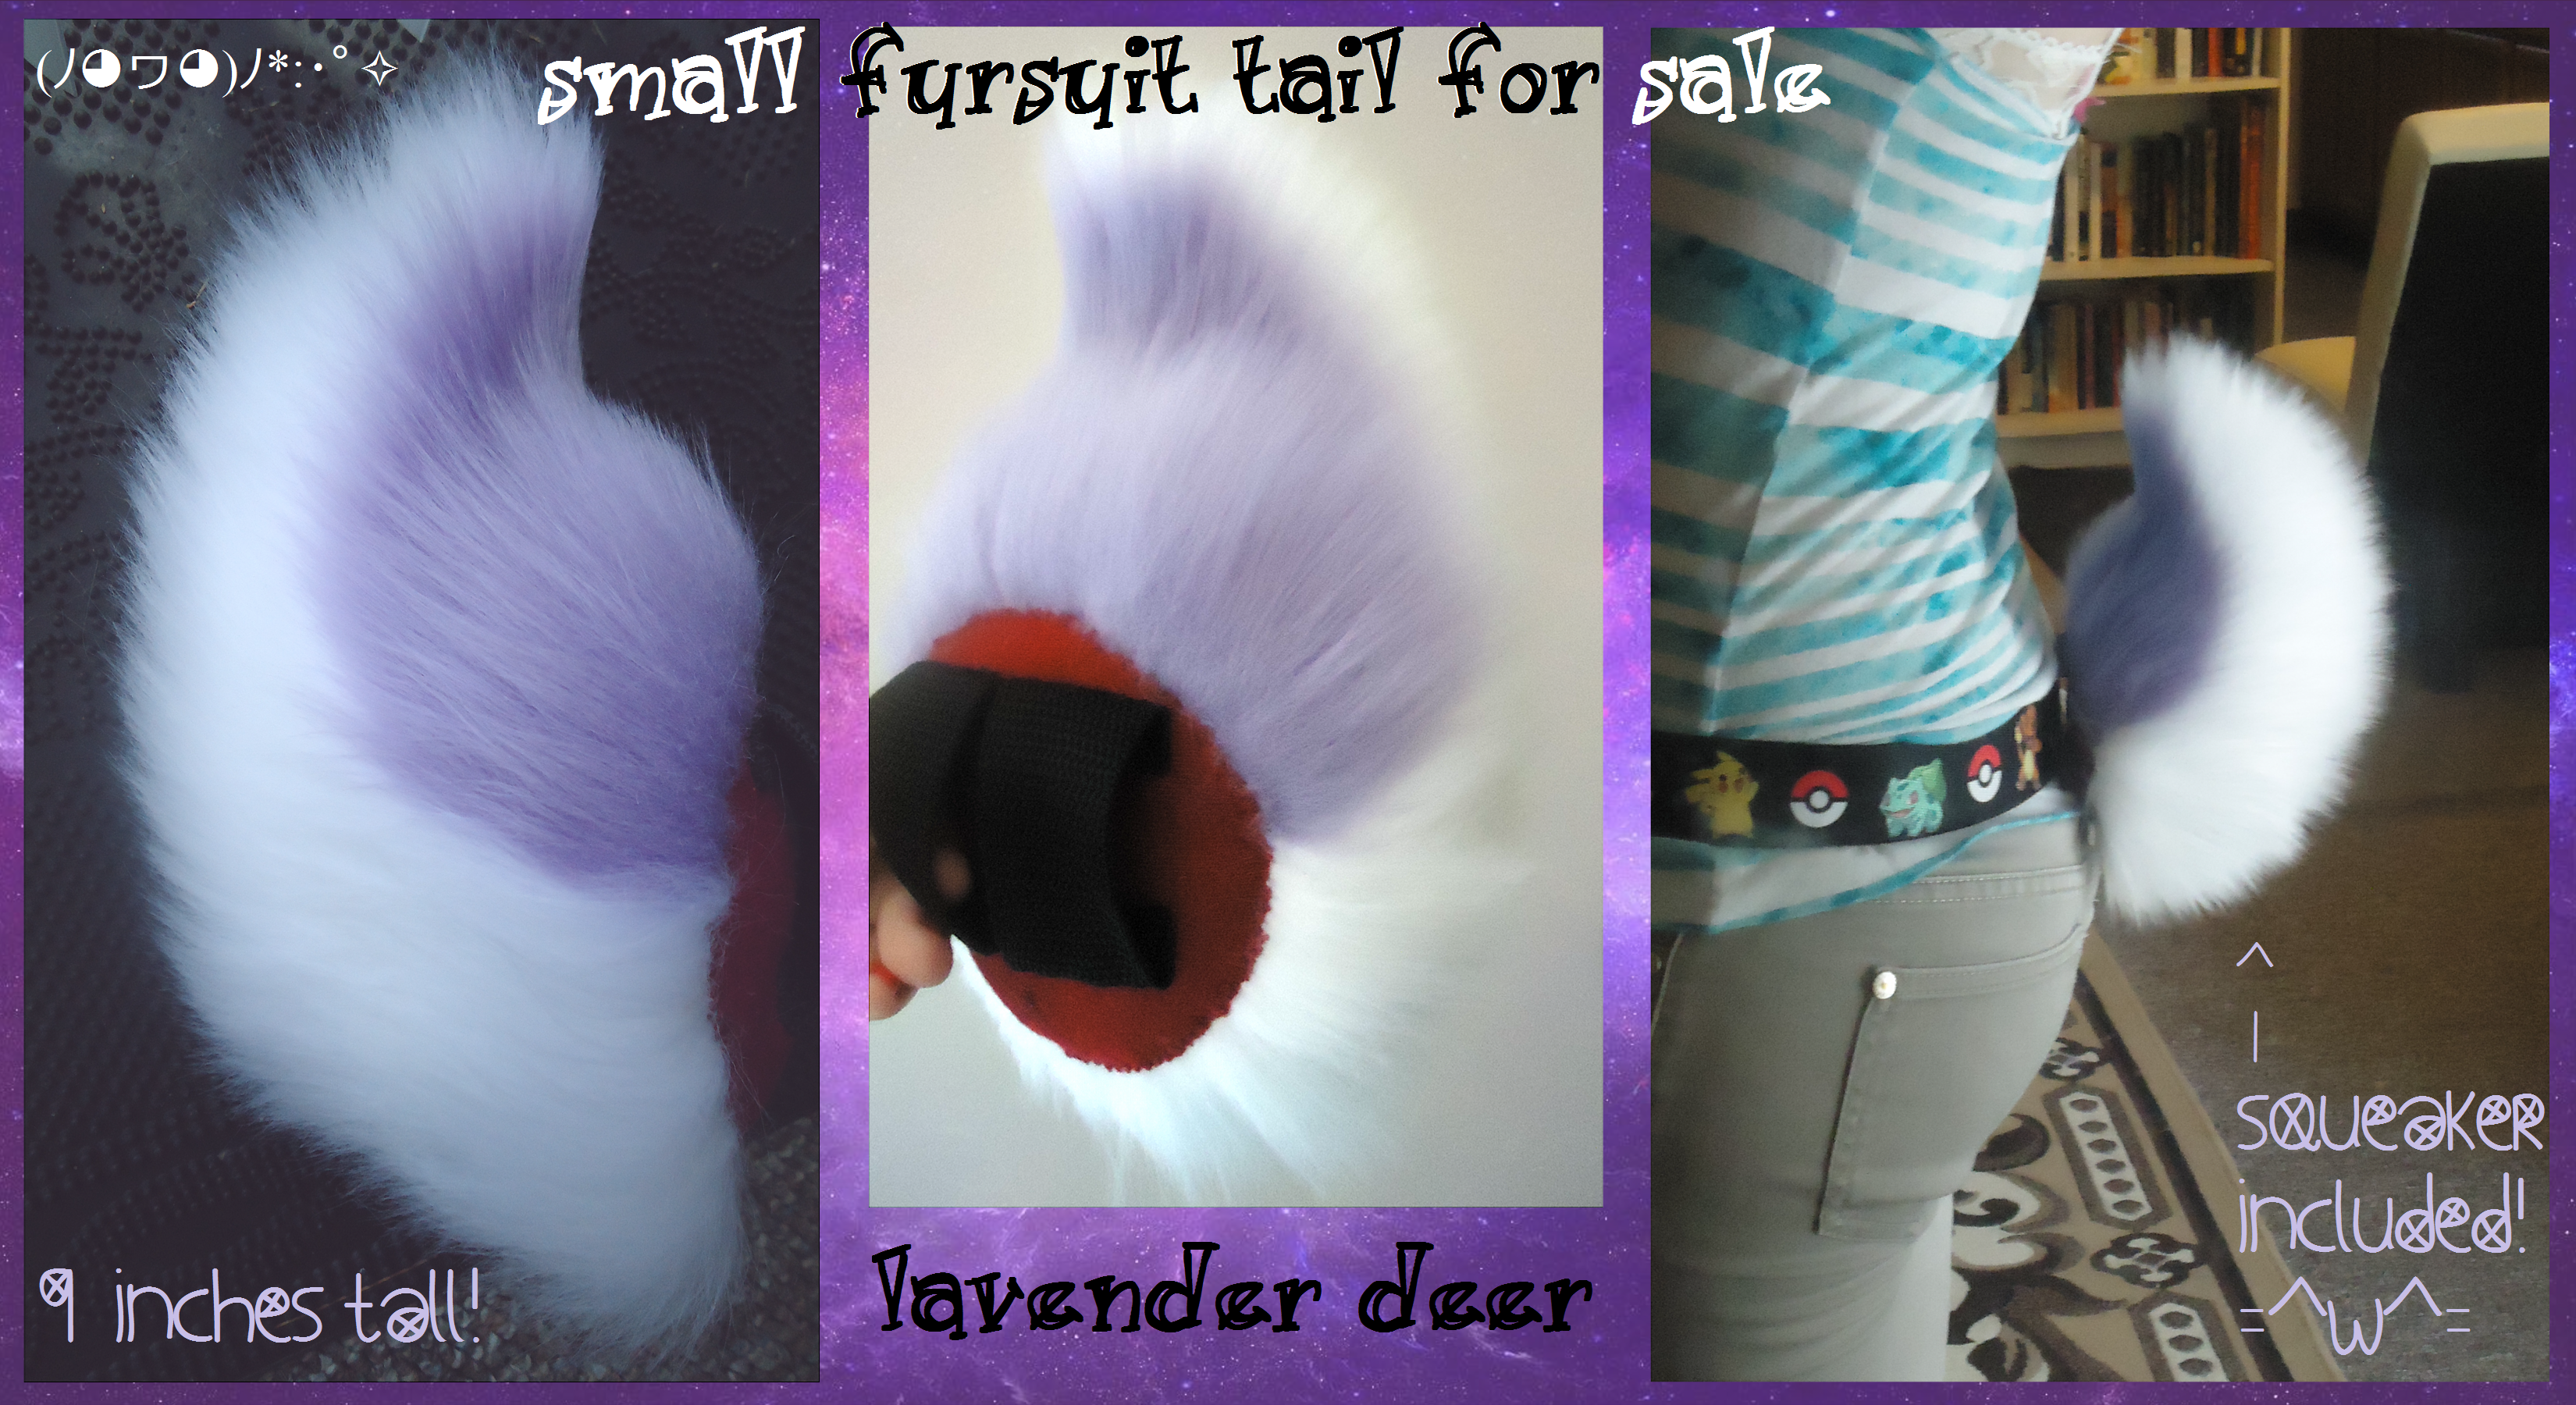 sold) lavender deer/rabbit/goat tail by QueenAyria on DeviantArt: queenayria.deviantart.com/art/sold-lavender-deer-rabbit-goat-tail...